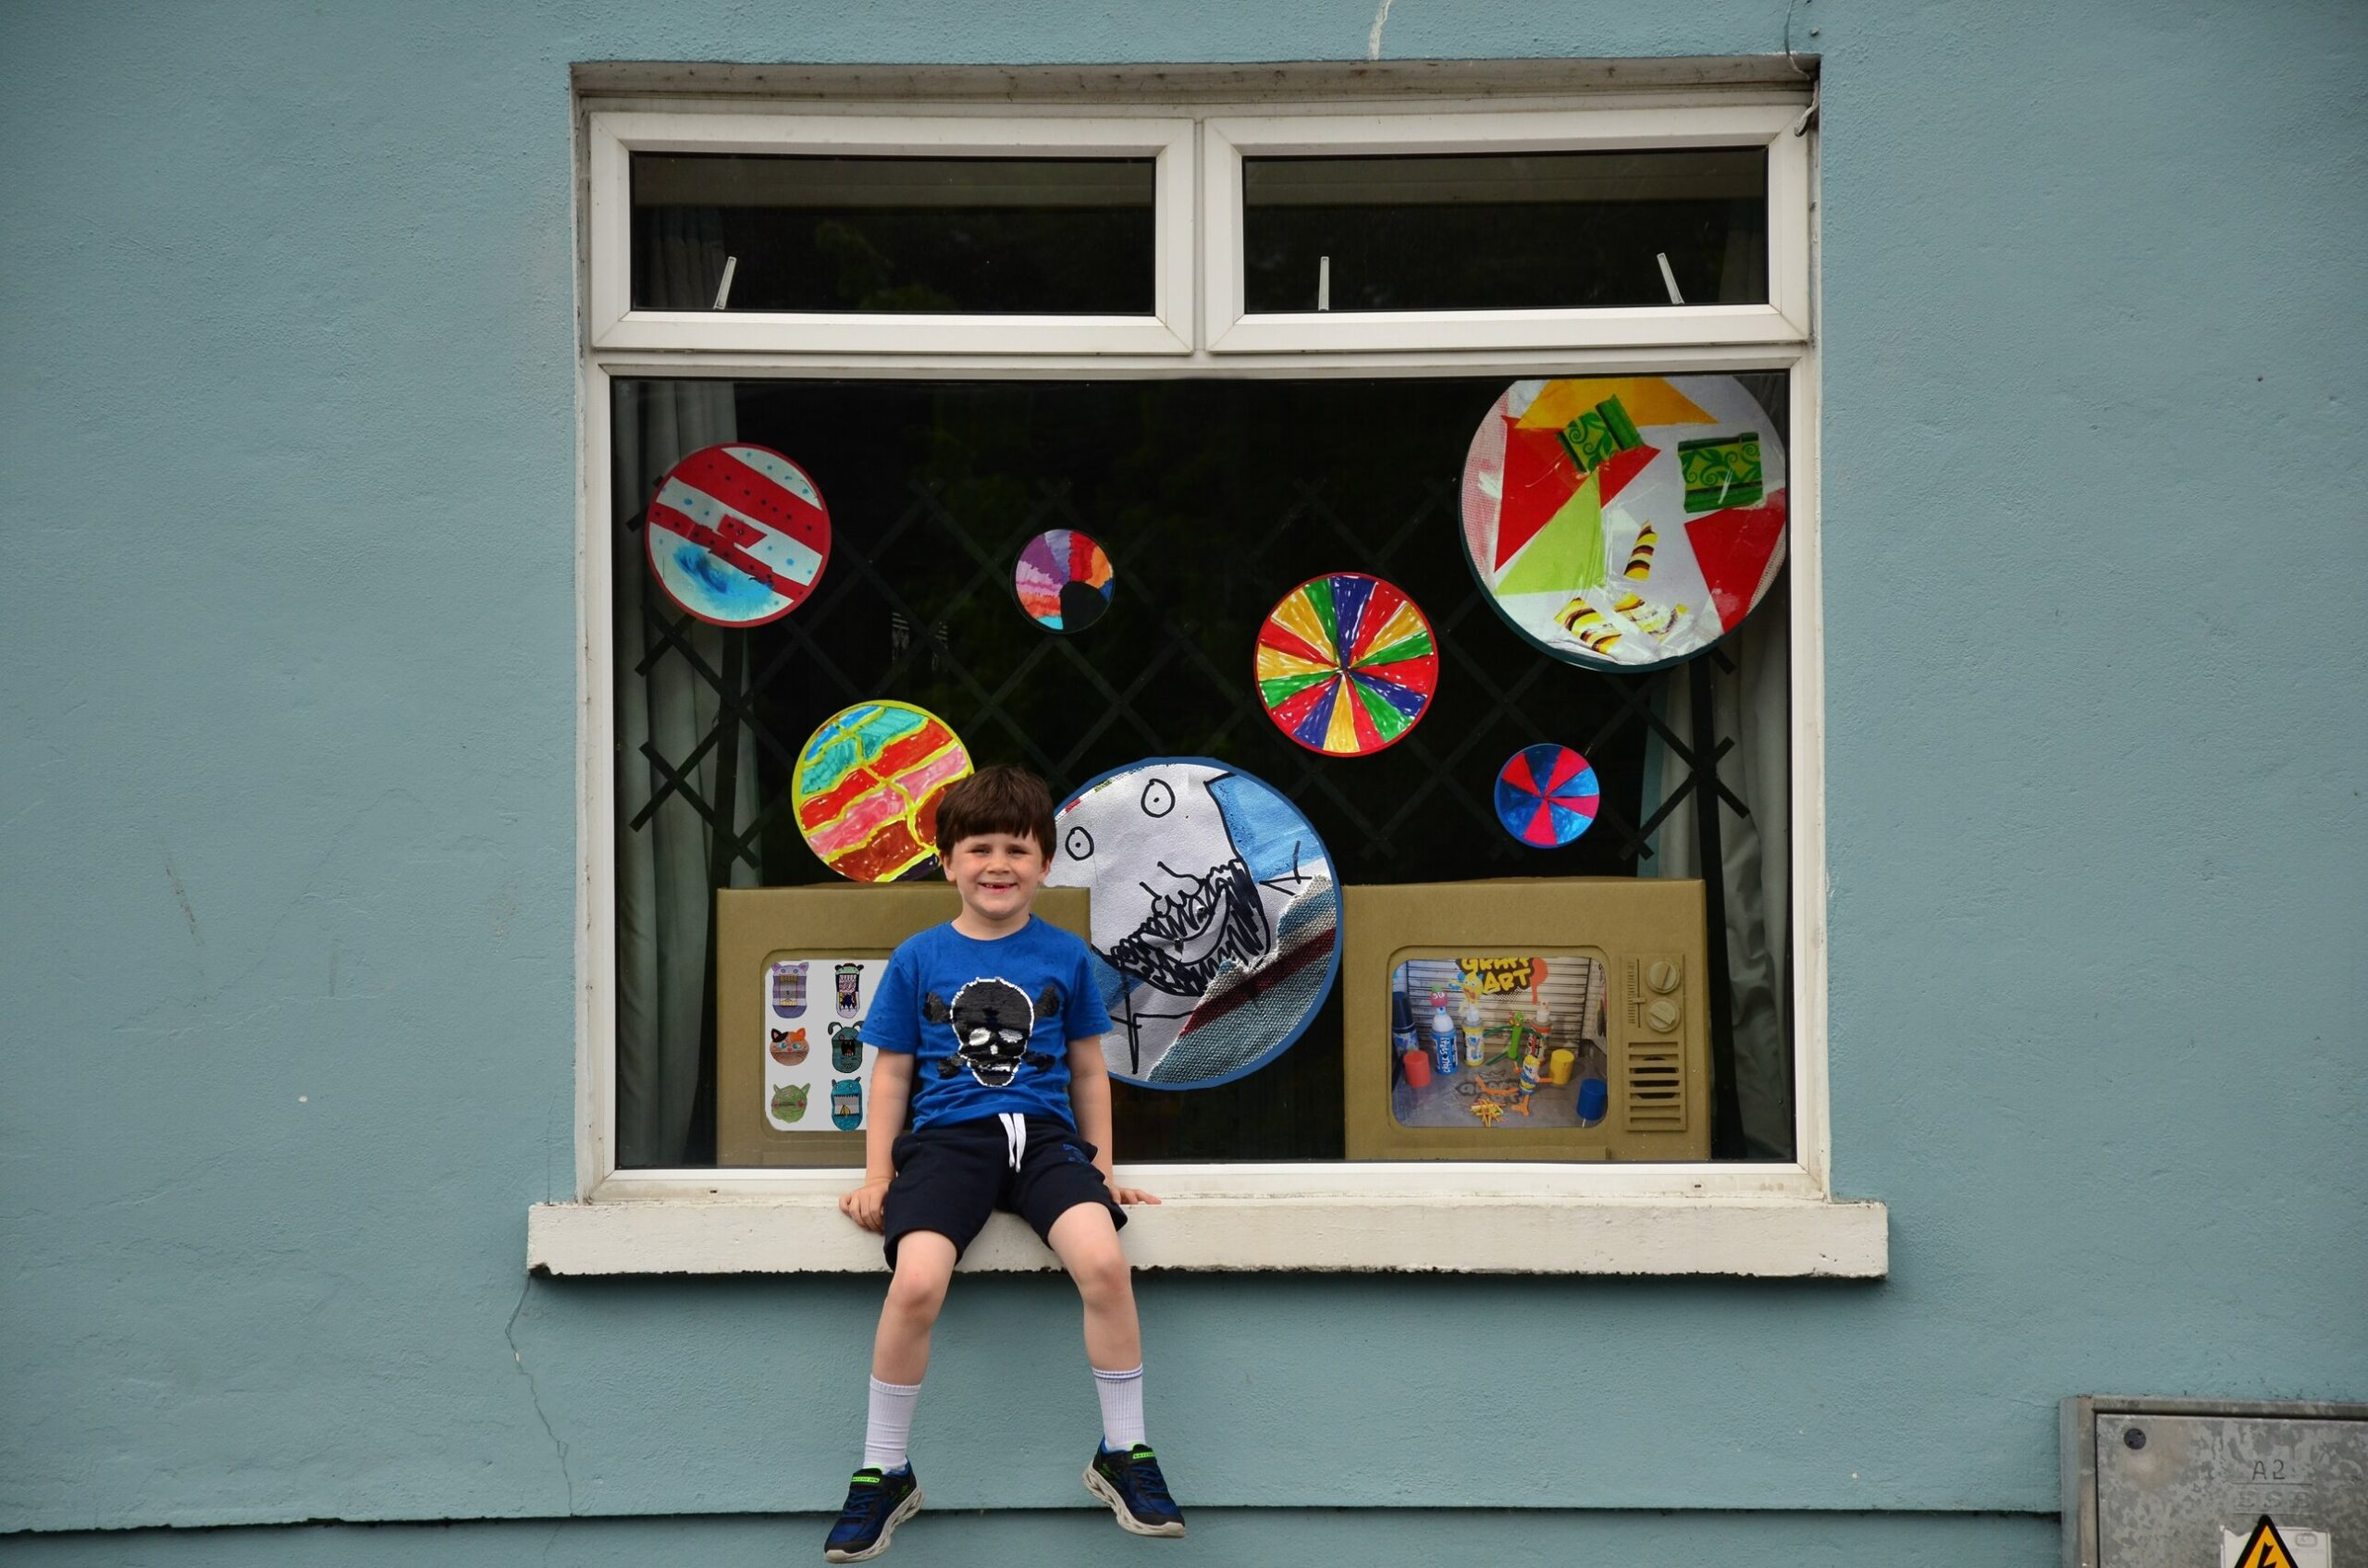 Our World in a Window exhibition launched by Helium Arts is coming to Limerick July 2 - 10 to Silkes Art & Crafts store on Catherine Street.